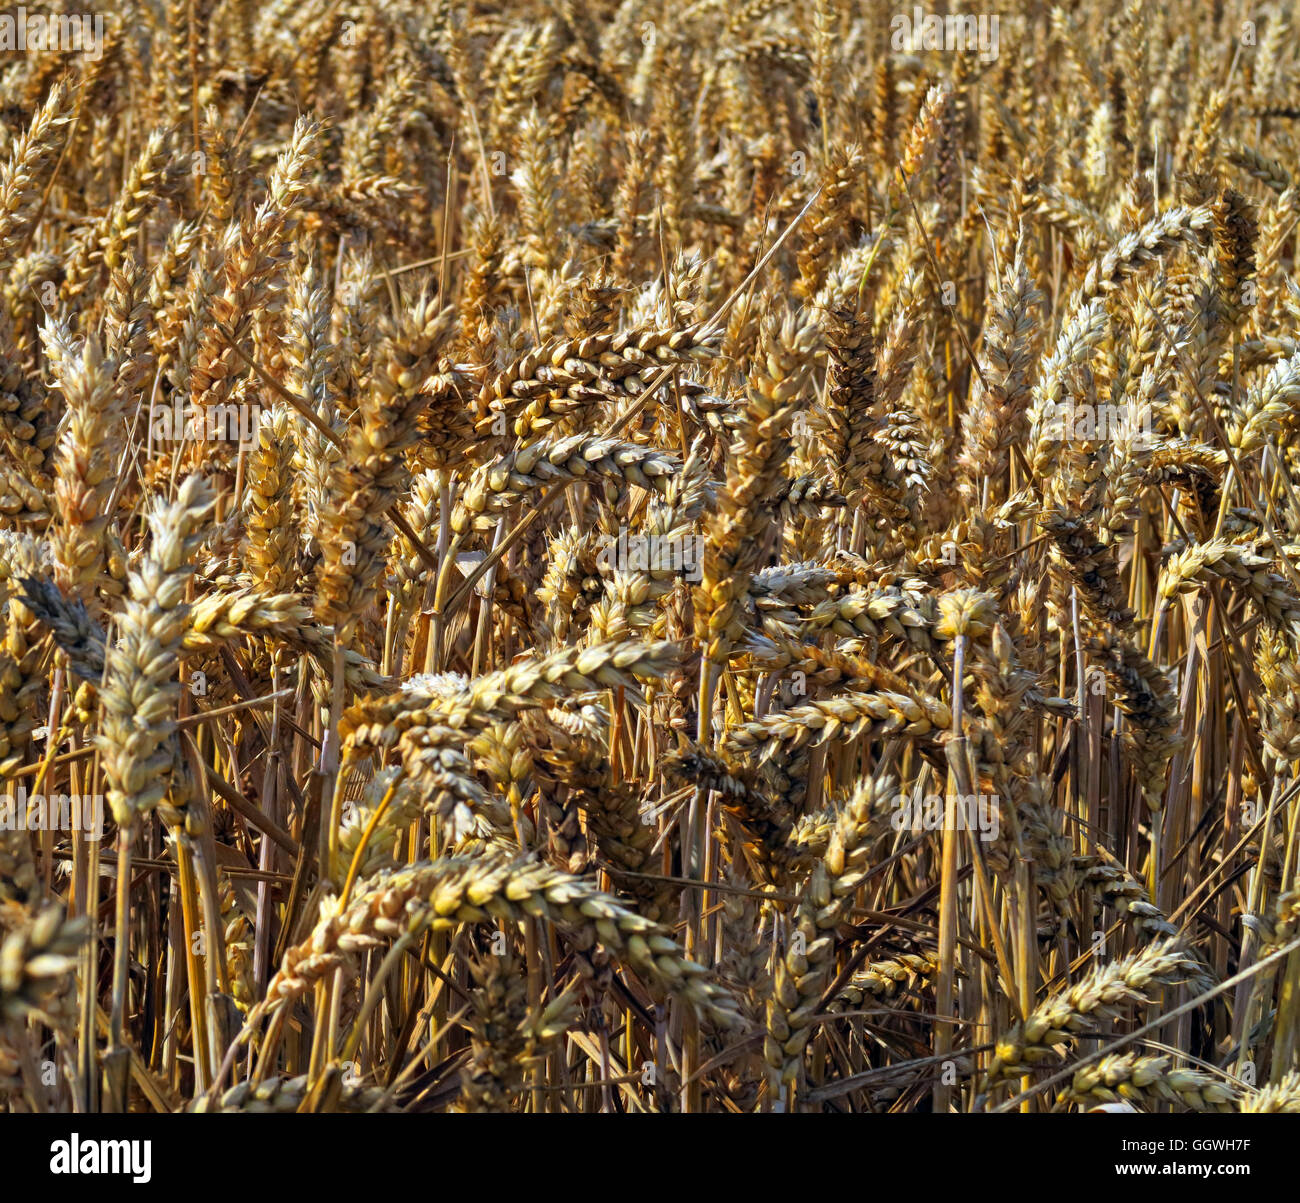 Close-up of a Field of barley, ready for harvest, Preston on the Hill, Halton, Cheshire, North West England - Stock Image